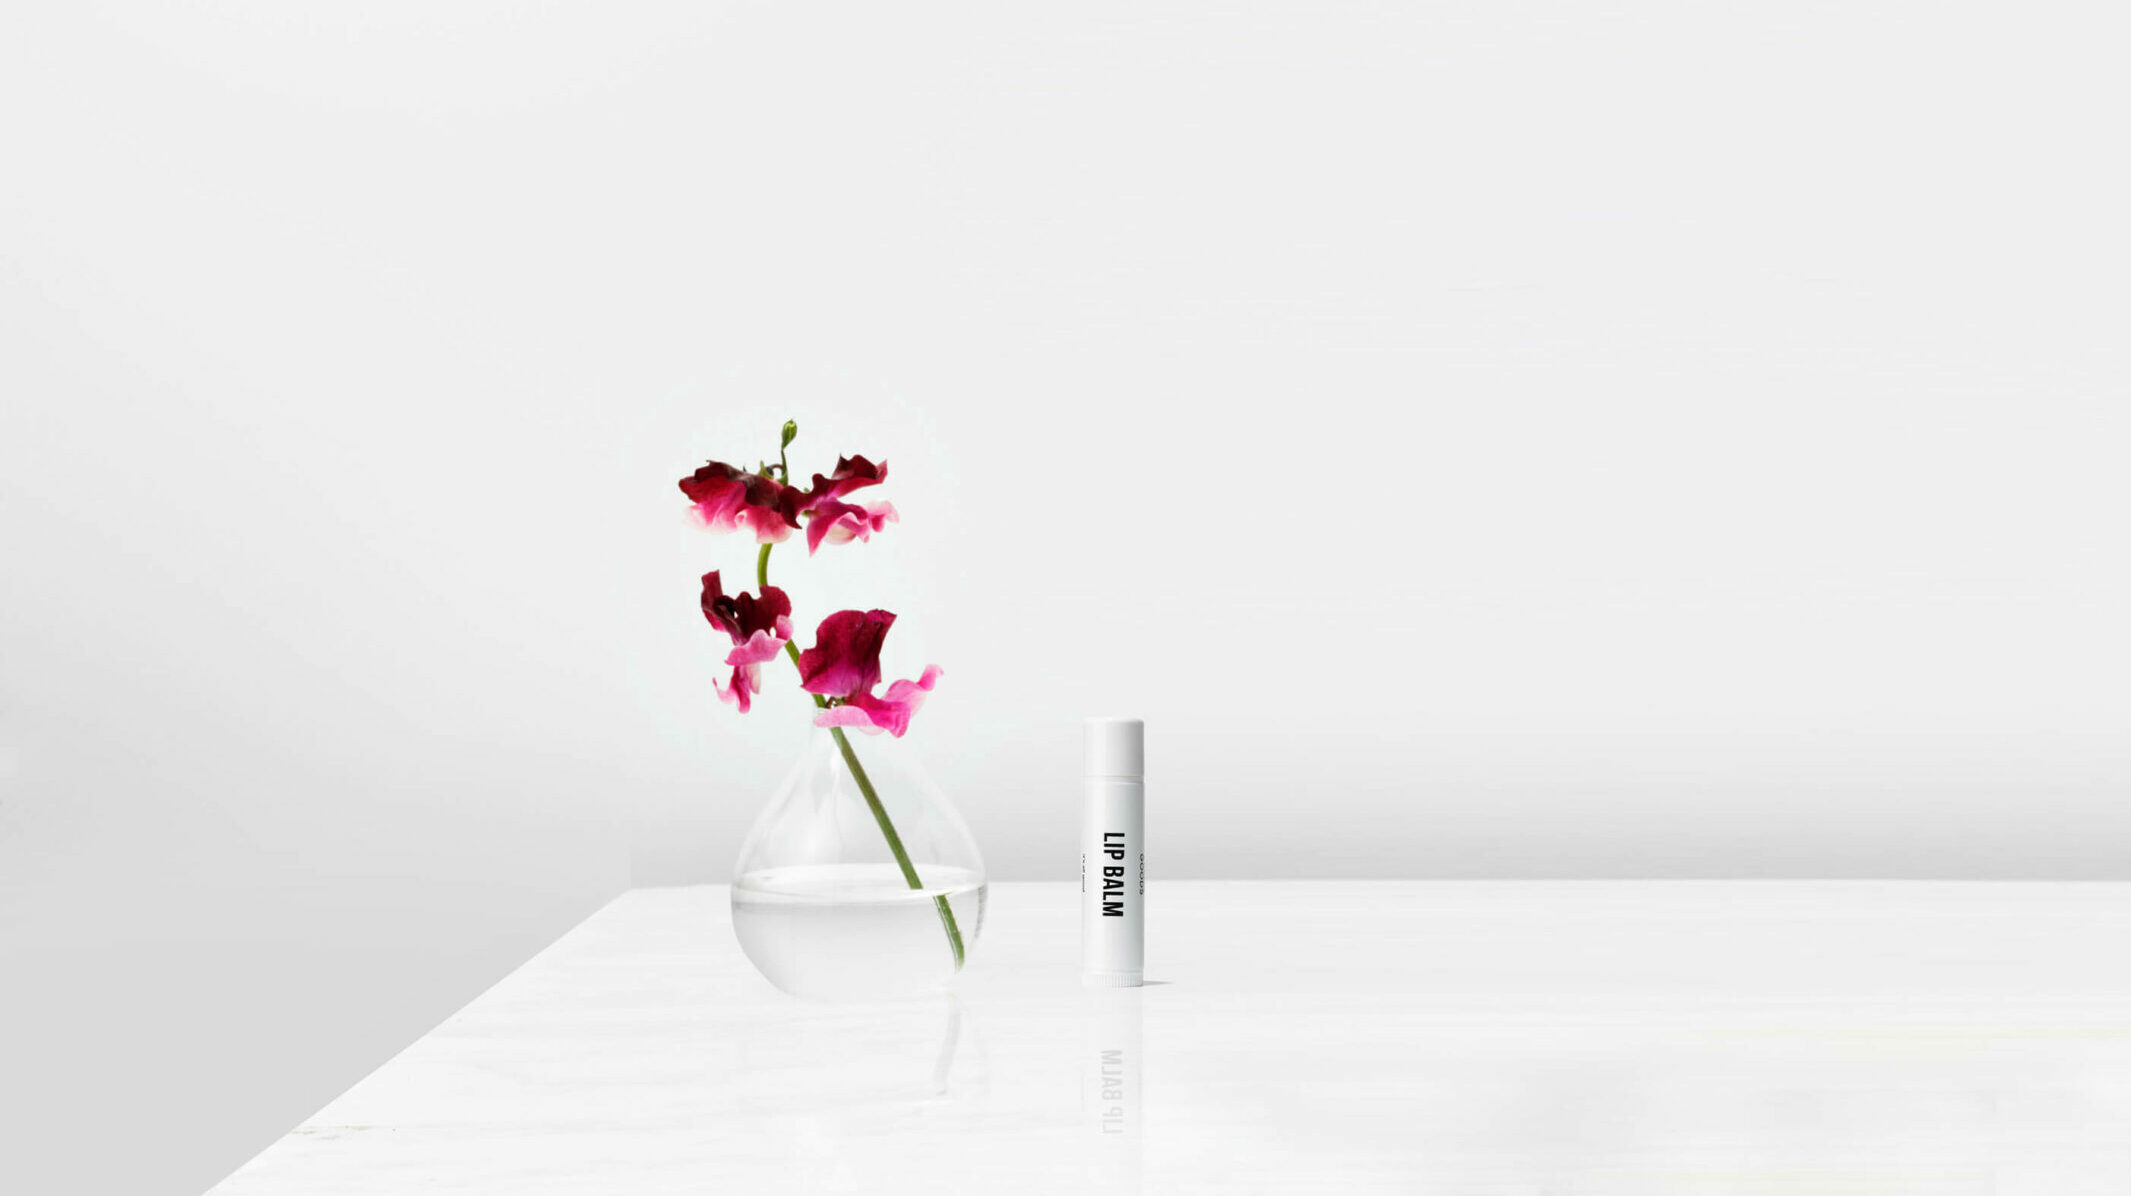 lip balm on a white table next to flowers